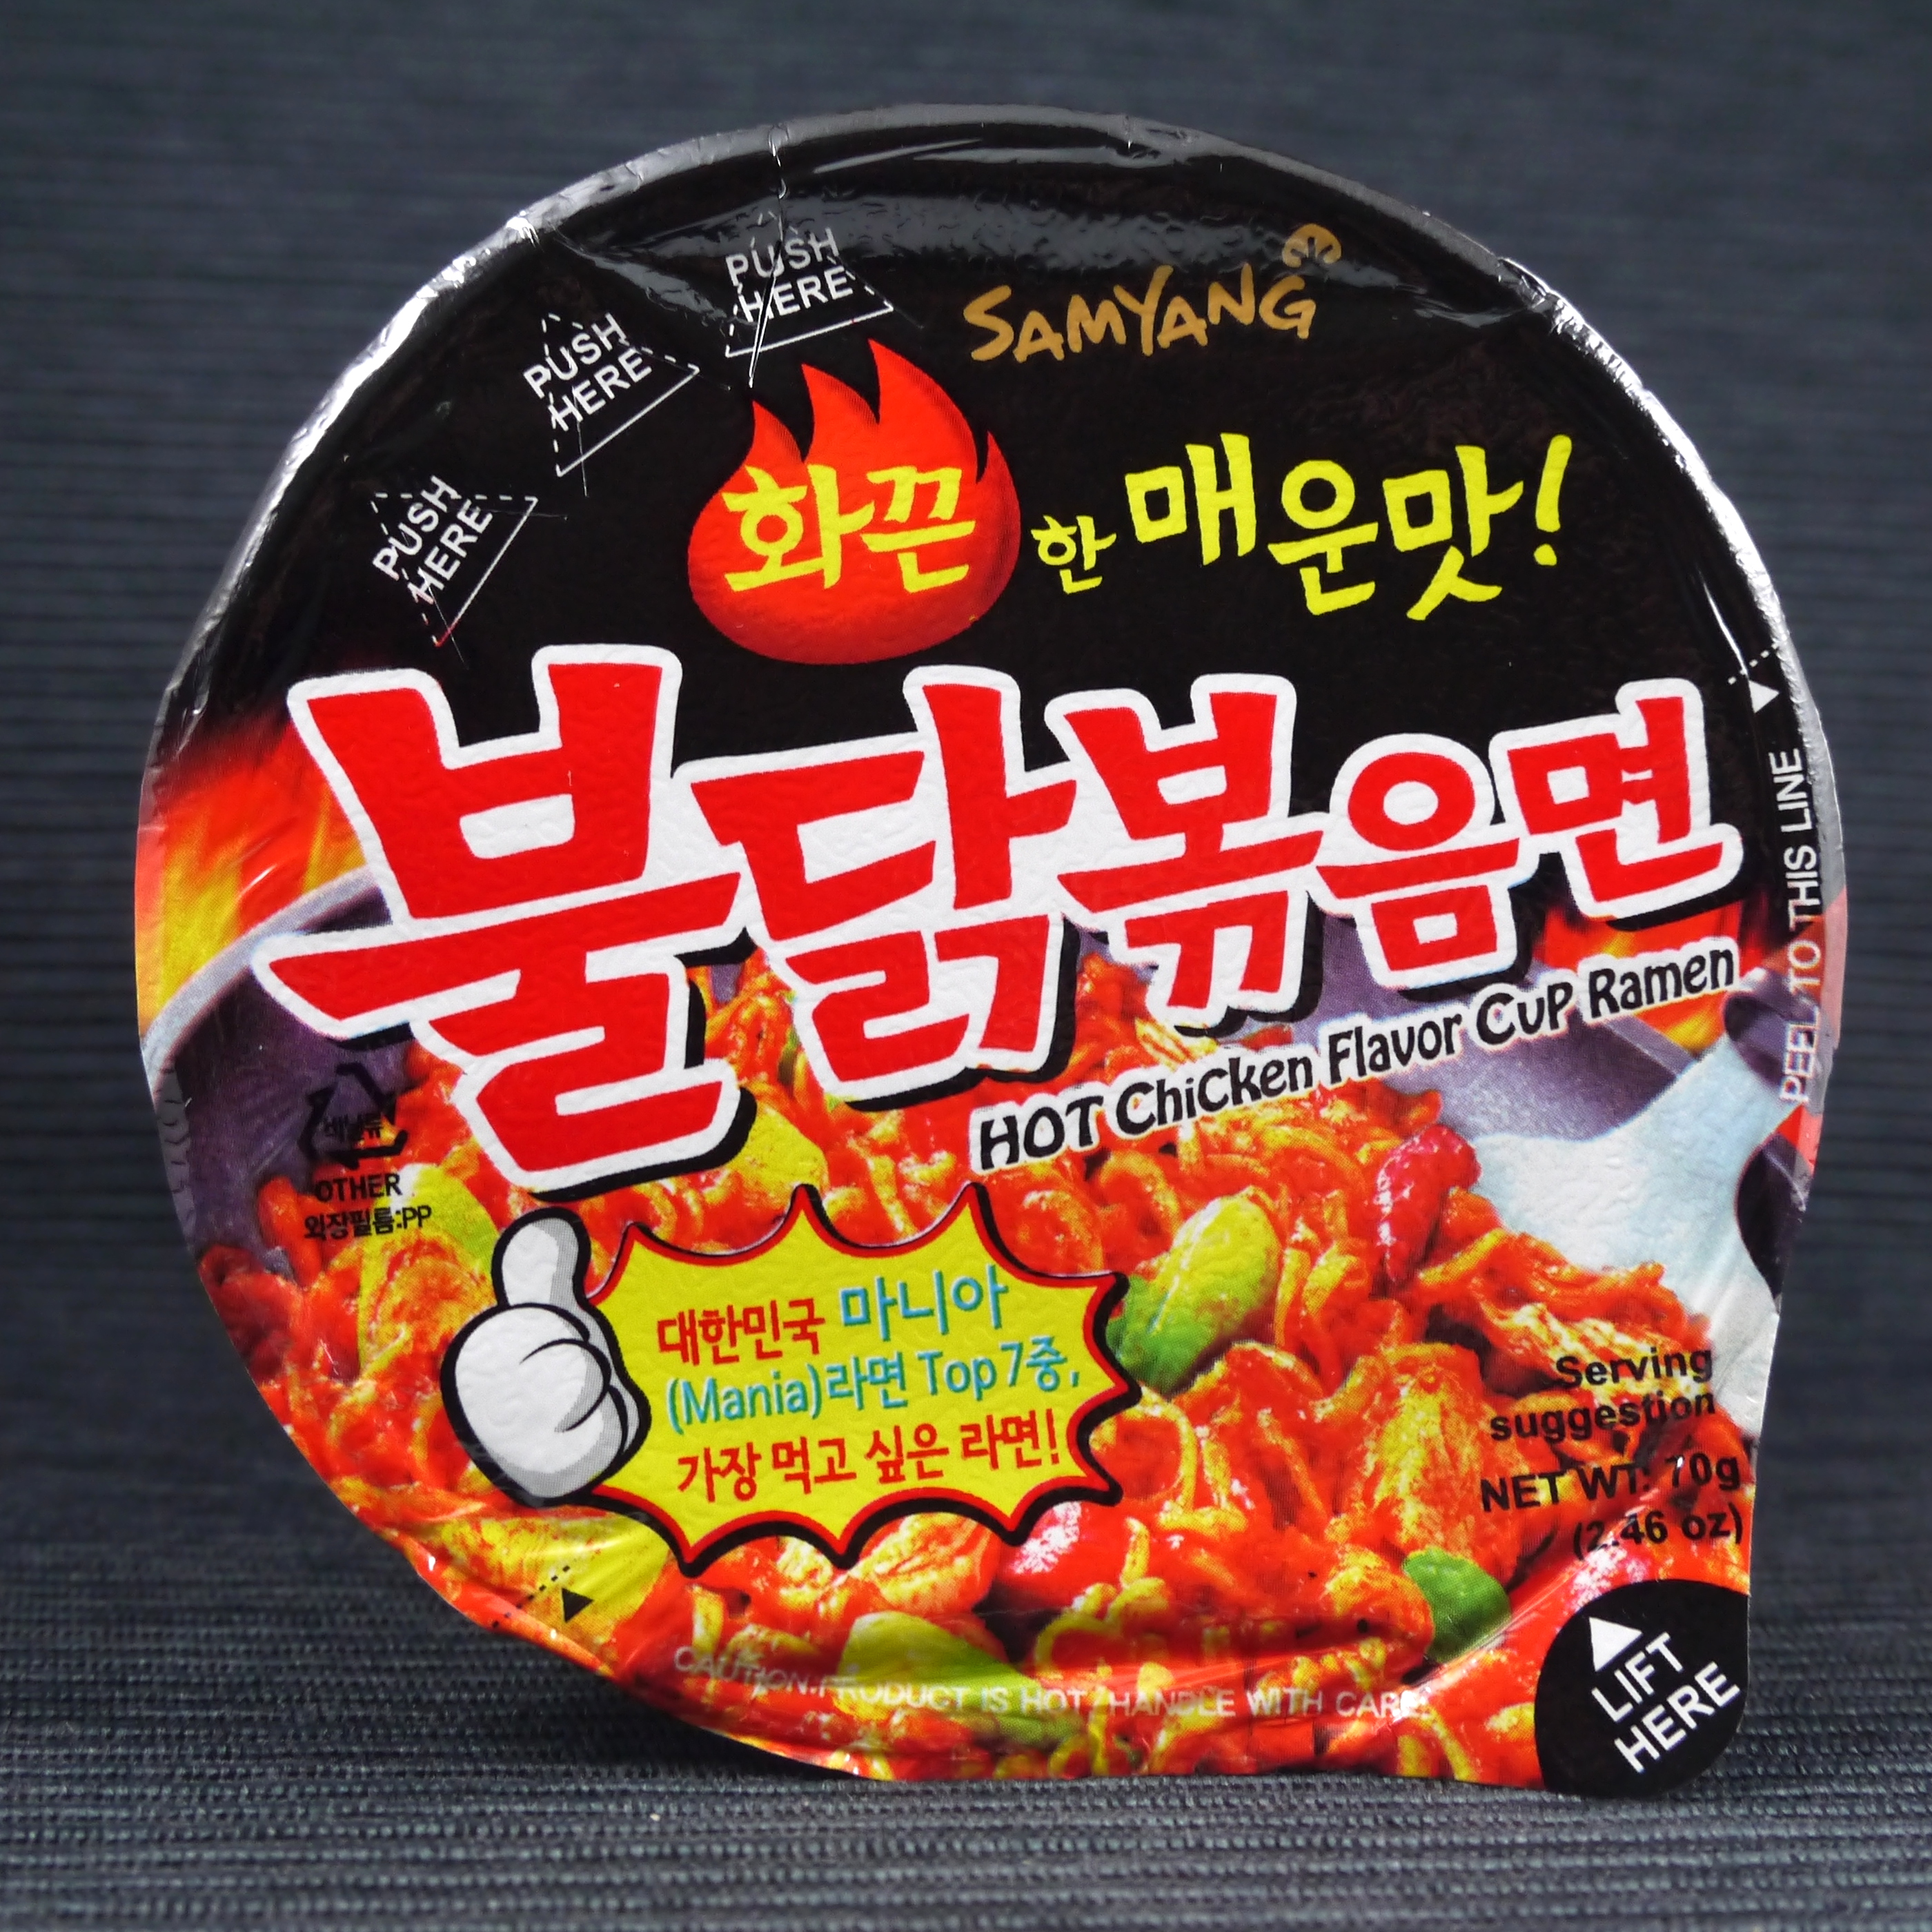 Ramen Noodlist Samyang Hot Chicken Flavor Cup South Korea Curry Logo Halal